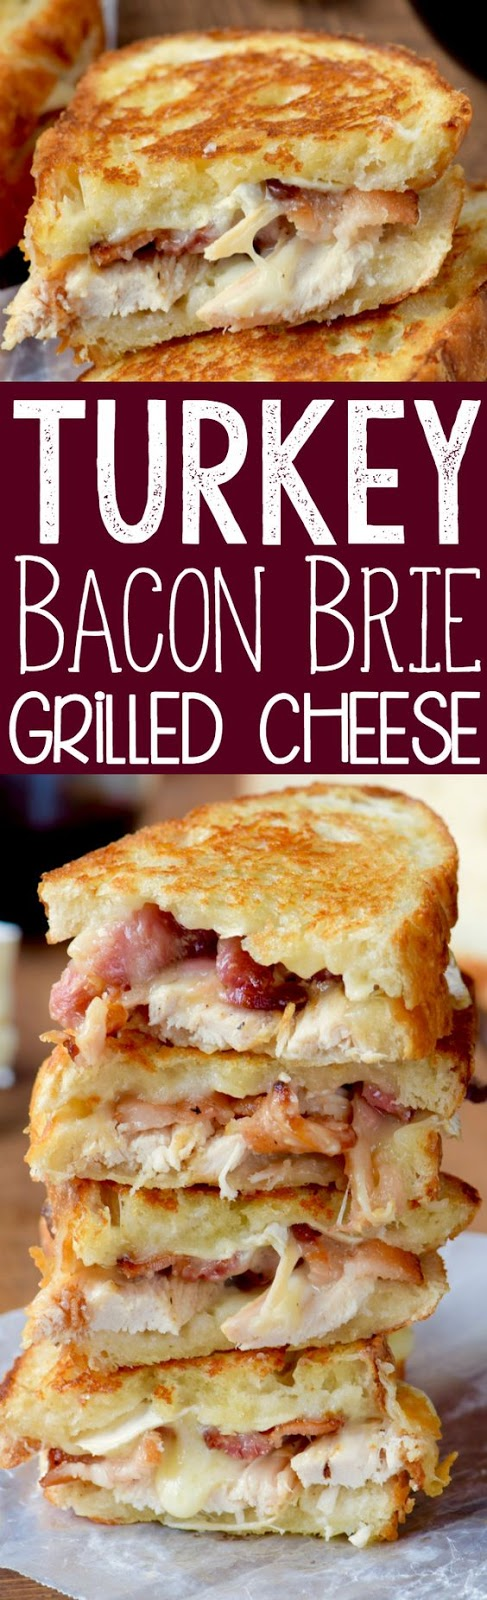 ★★★★☆ 3209 ratings      | TURKEY BACON BRIE GRILLED CHEESE SANDWICH #TURKEY #BACON #BRIE #GRILLED #CHEESE #SANDWICH